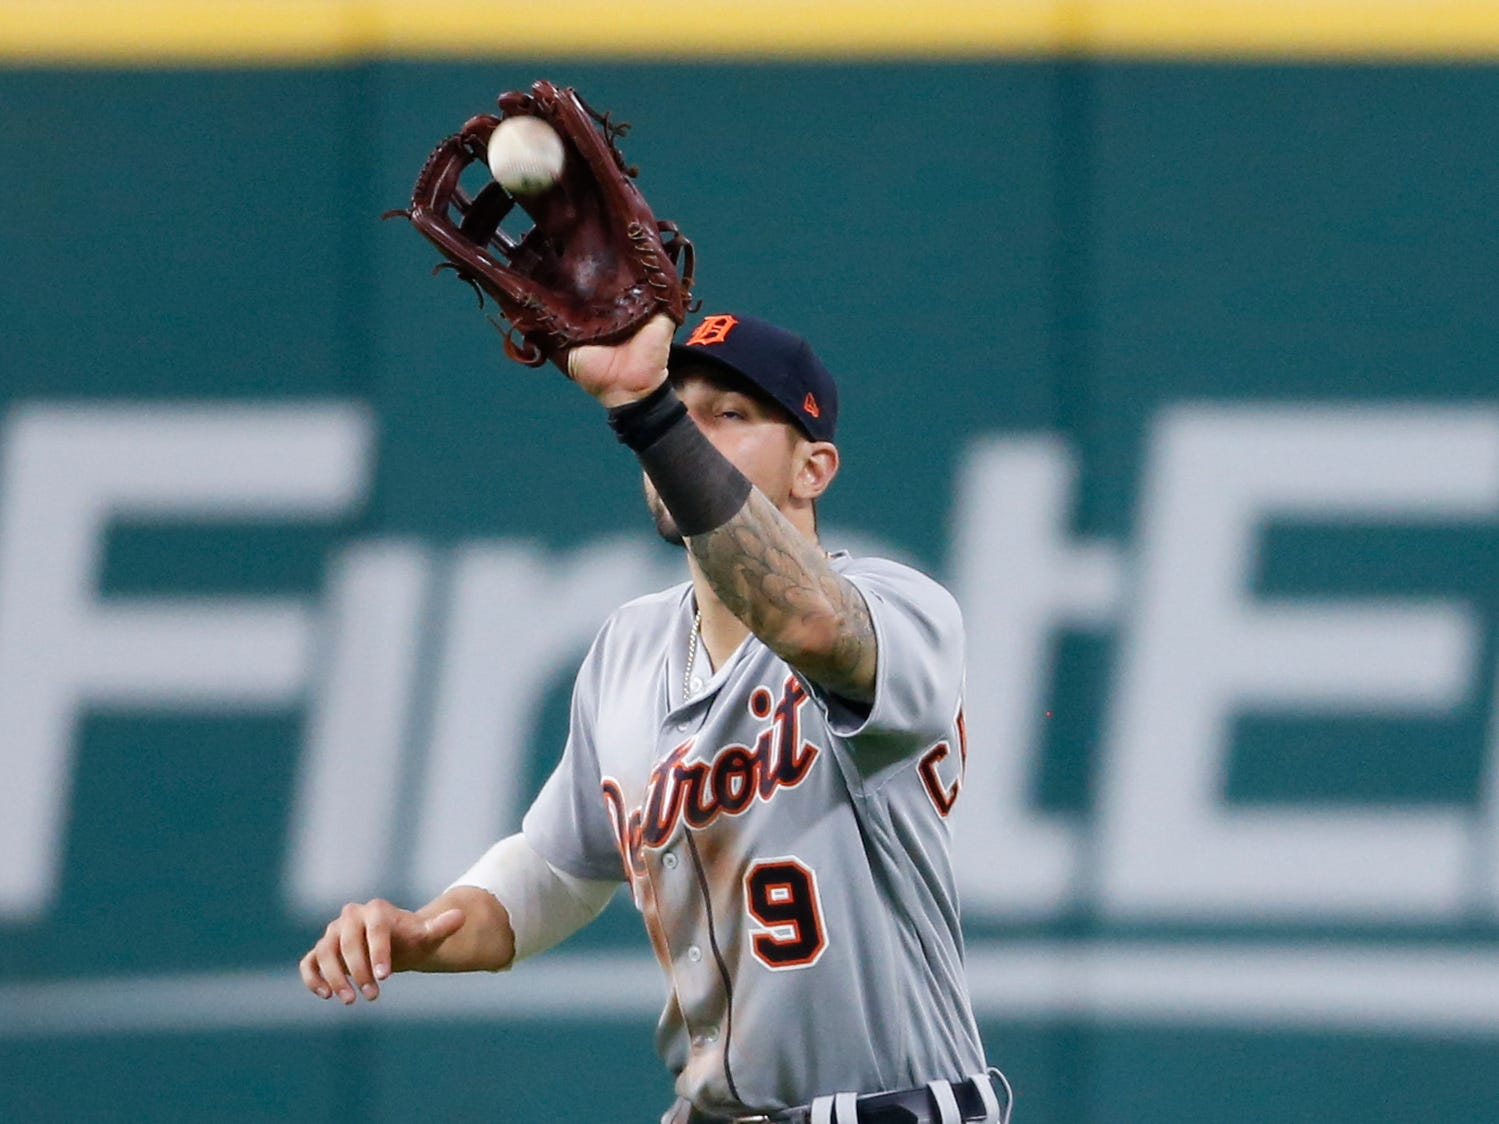 Detroit Tigers' Nicholas Castellanos makes a catch to get out Cleveland Indians' Michael Brantley during the fifth inning.